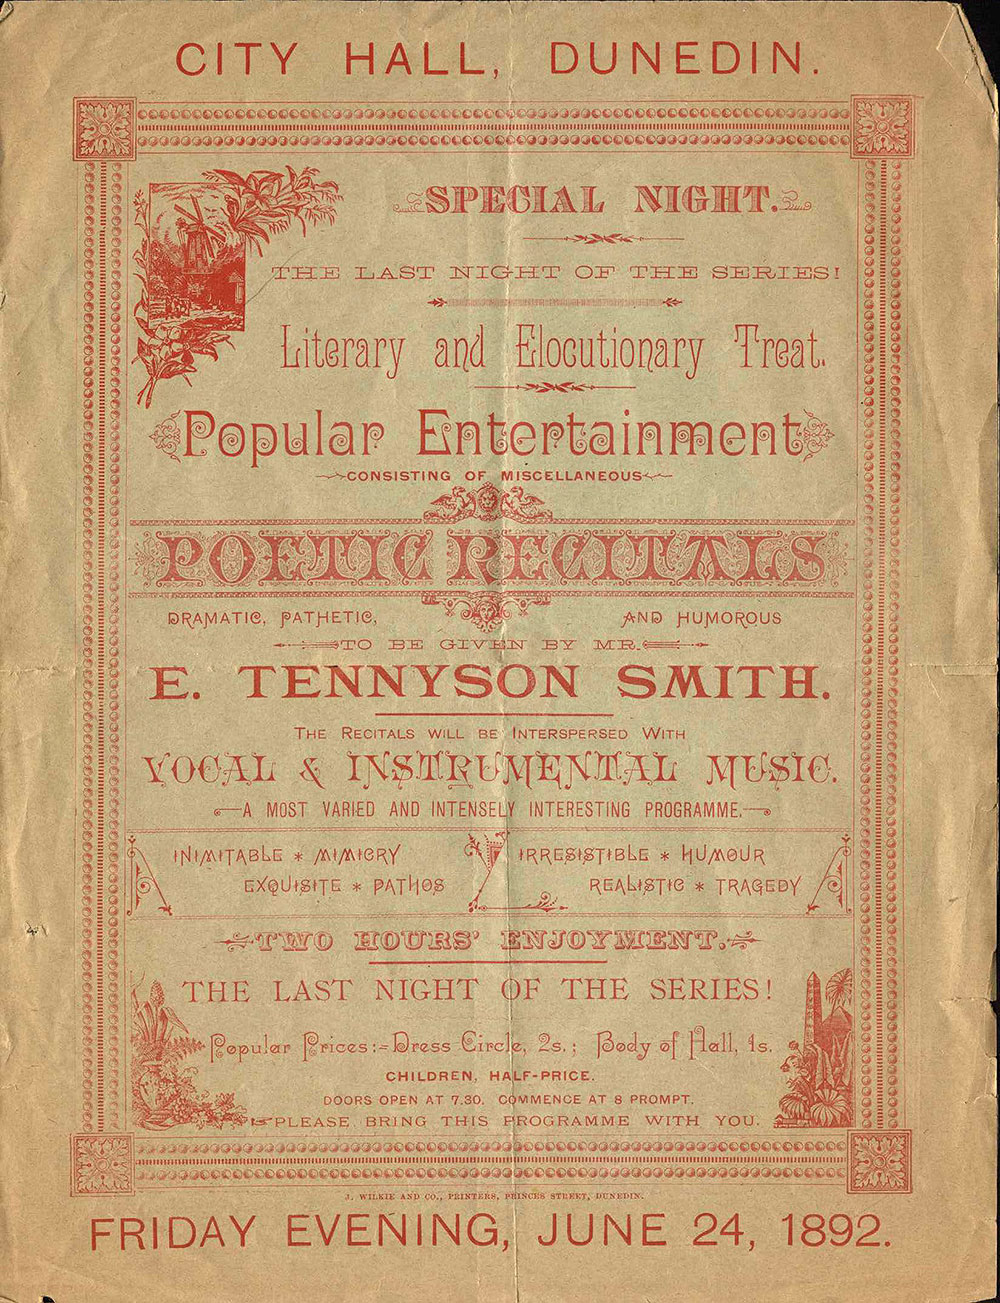 <em>Literary and elocutionary treat: Popular entertainment consisting of miscellaneous poetic recitals, dramatic, pathetic and humorous</em>. E. Tennyson Smith. City Hall, Dunedin, June 24, 1892.